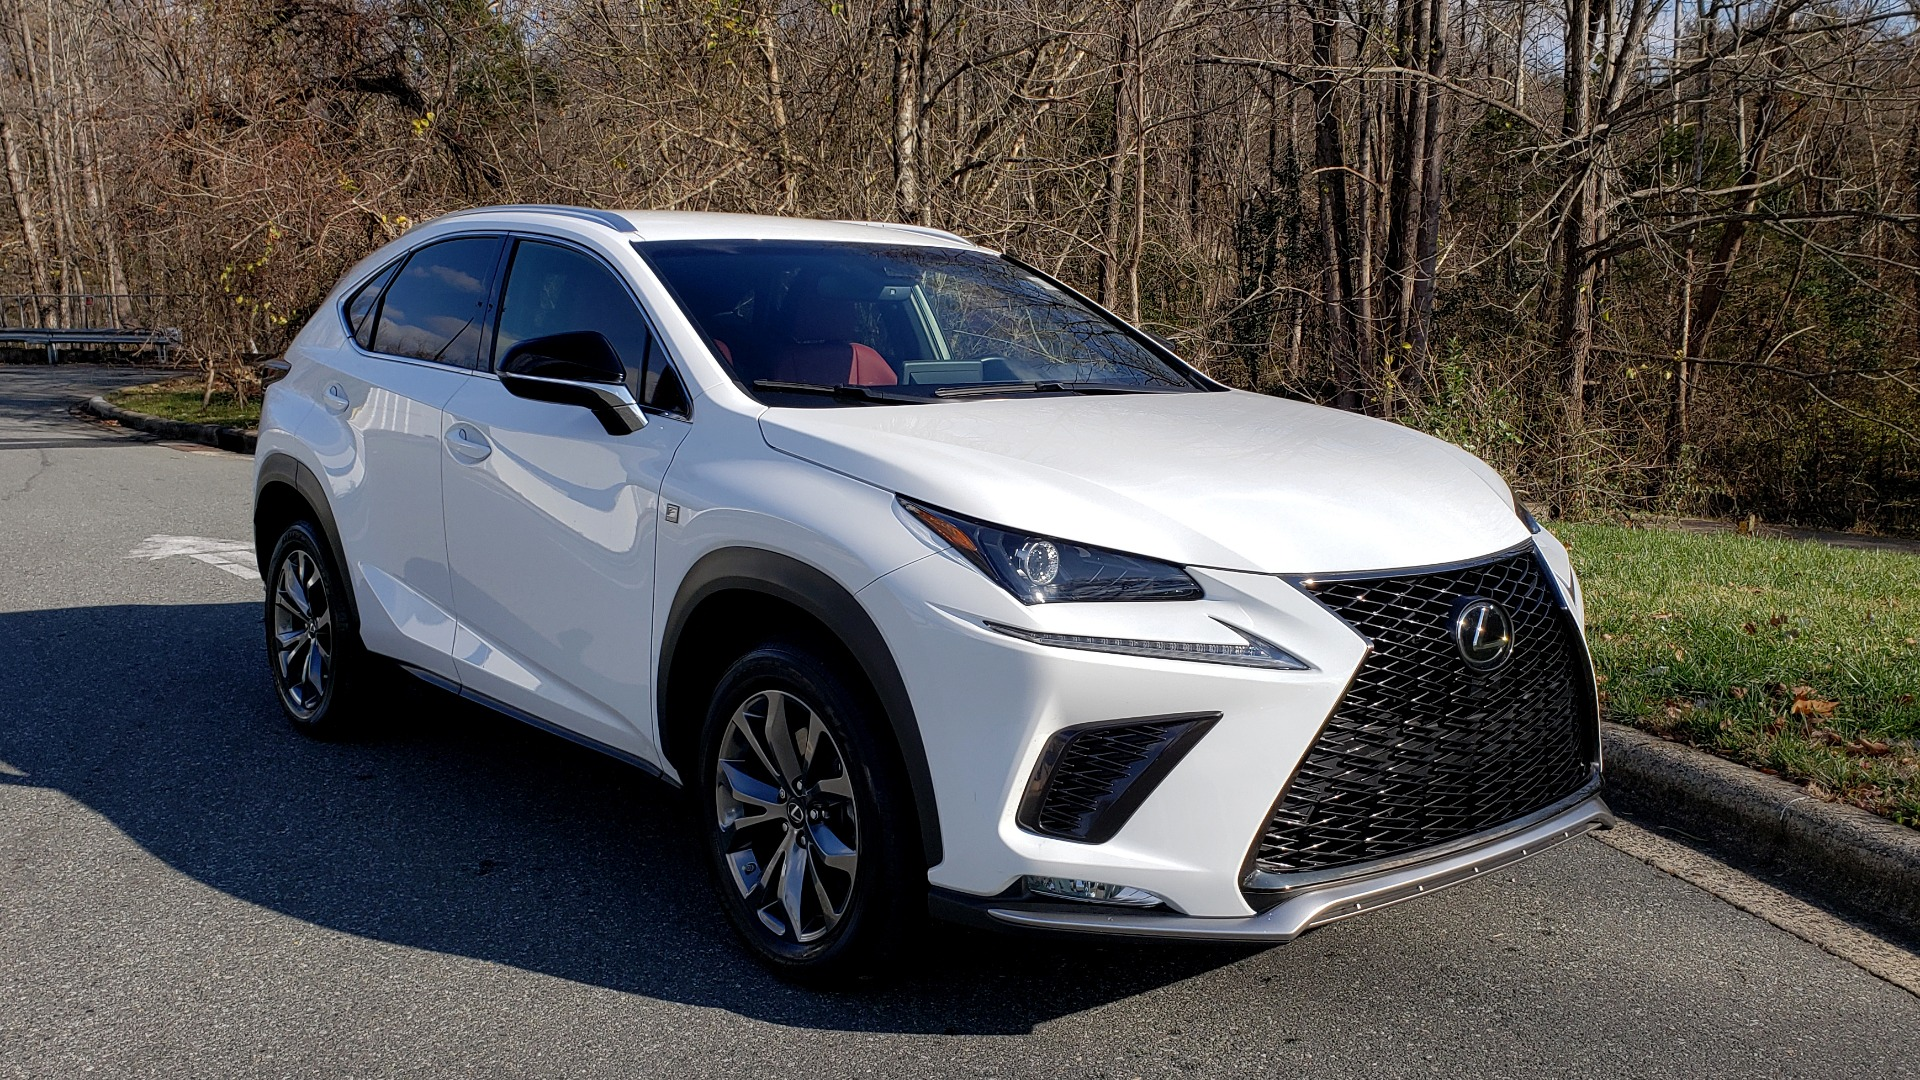 Used 2019 Lexus NX 300 F-SPORT / 2.0L TURBO / LEATHER / 18IN WHEELS / REARVIEW for sale Sold at Formula Imports in Charlotte NC 28227 4